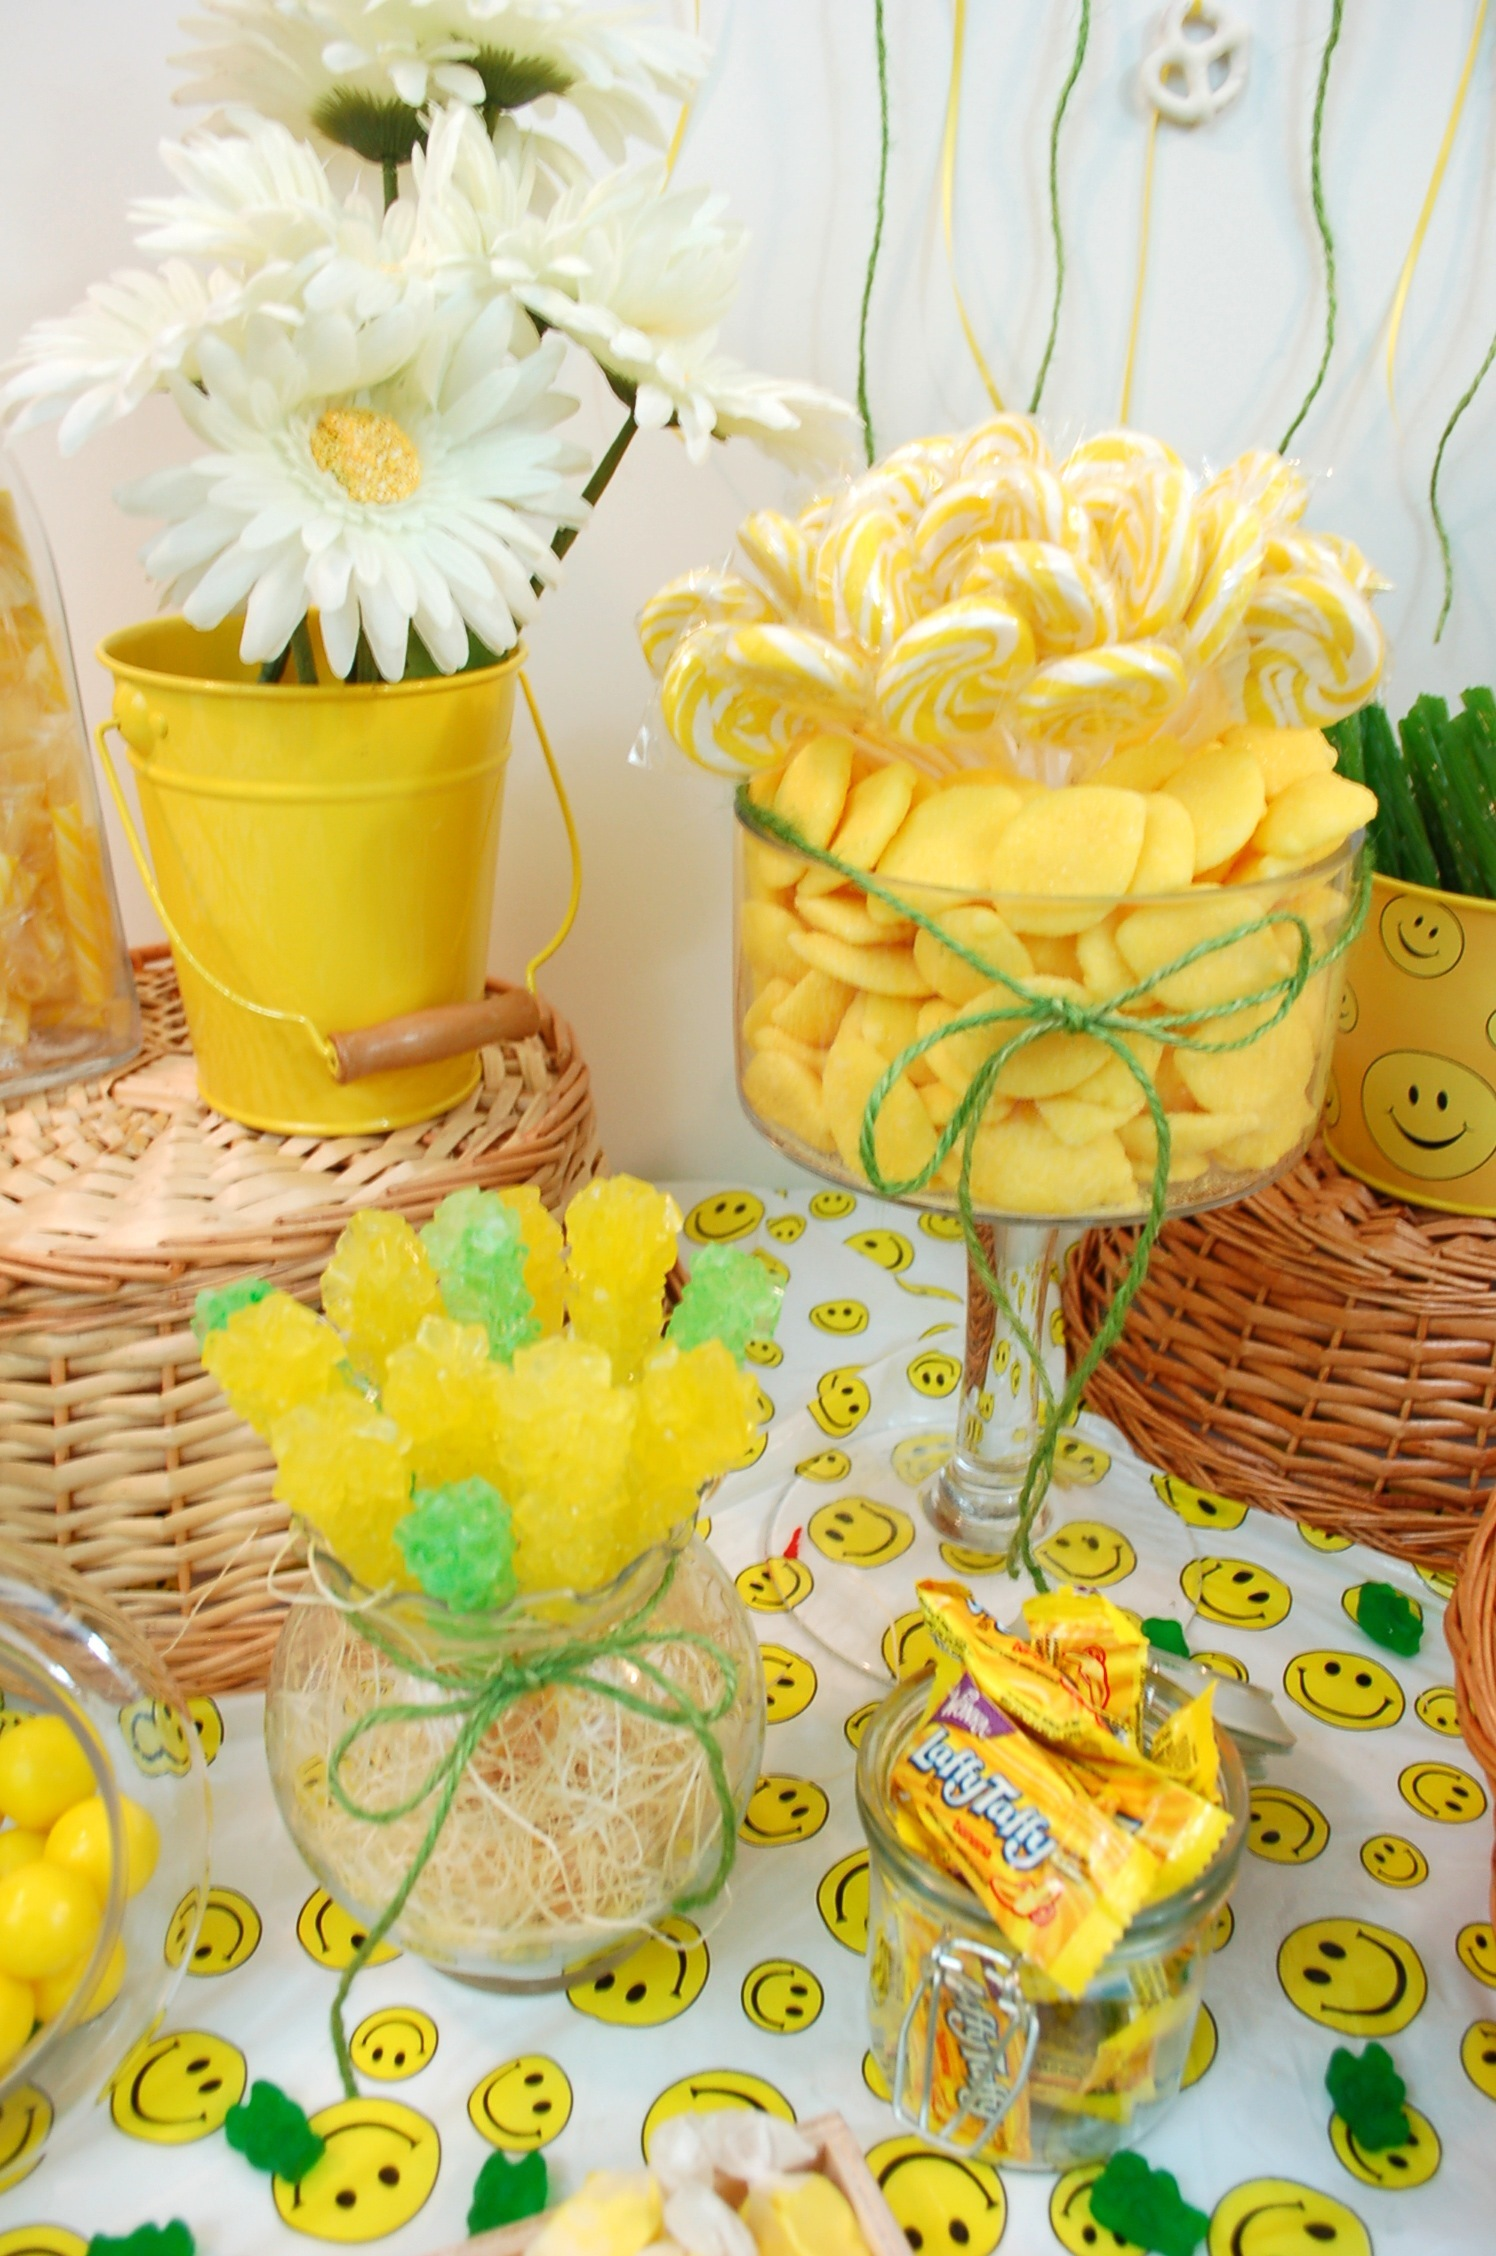 DIY, Reception, Flowers & Decor, Favors & Gifts, Cakes, white, yellow, green, cake, Favors, Food, Wedding, Party, Table, Candy, Buffet, Display, Inspiration board, Bar, Snacks